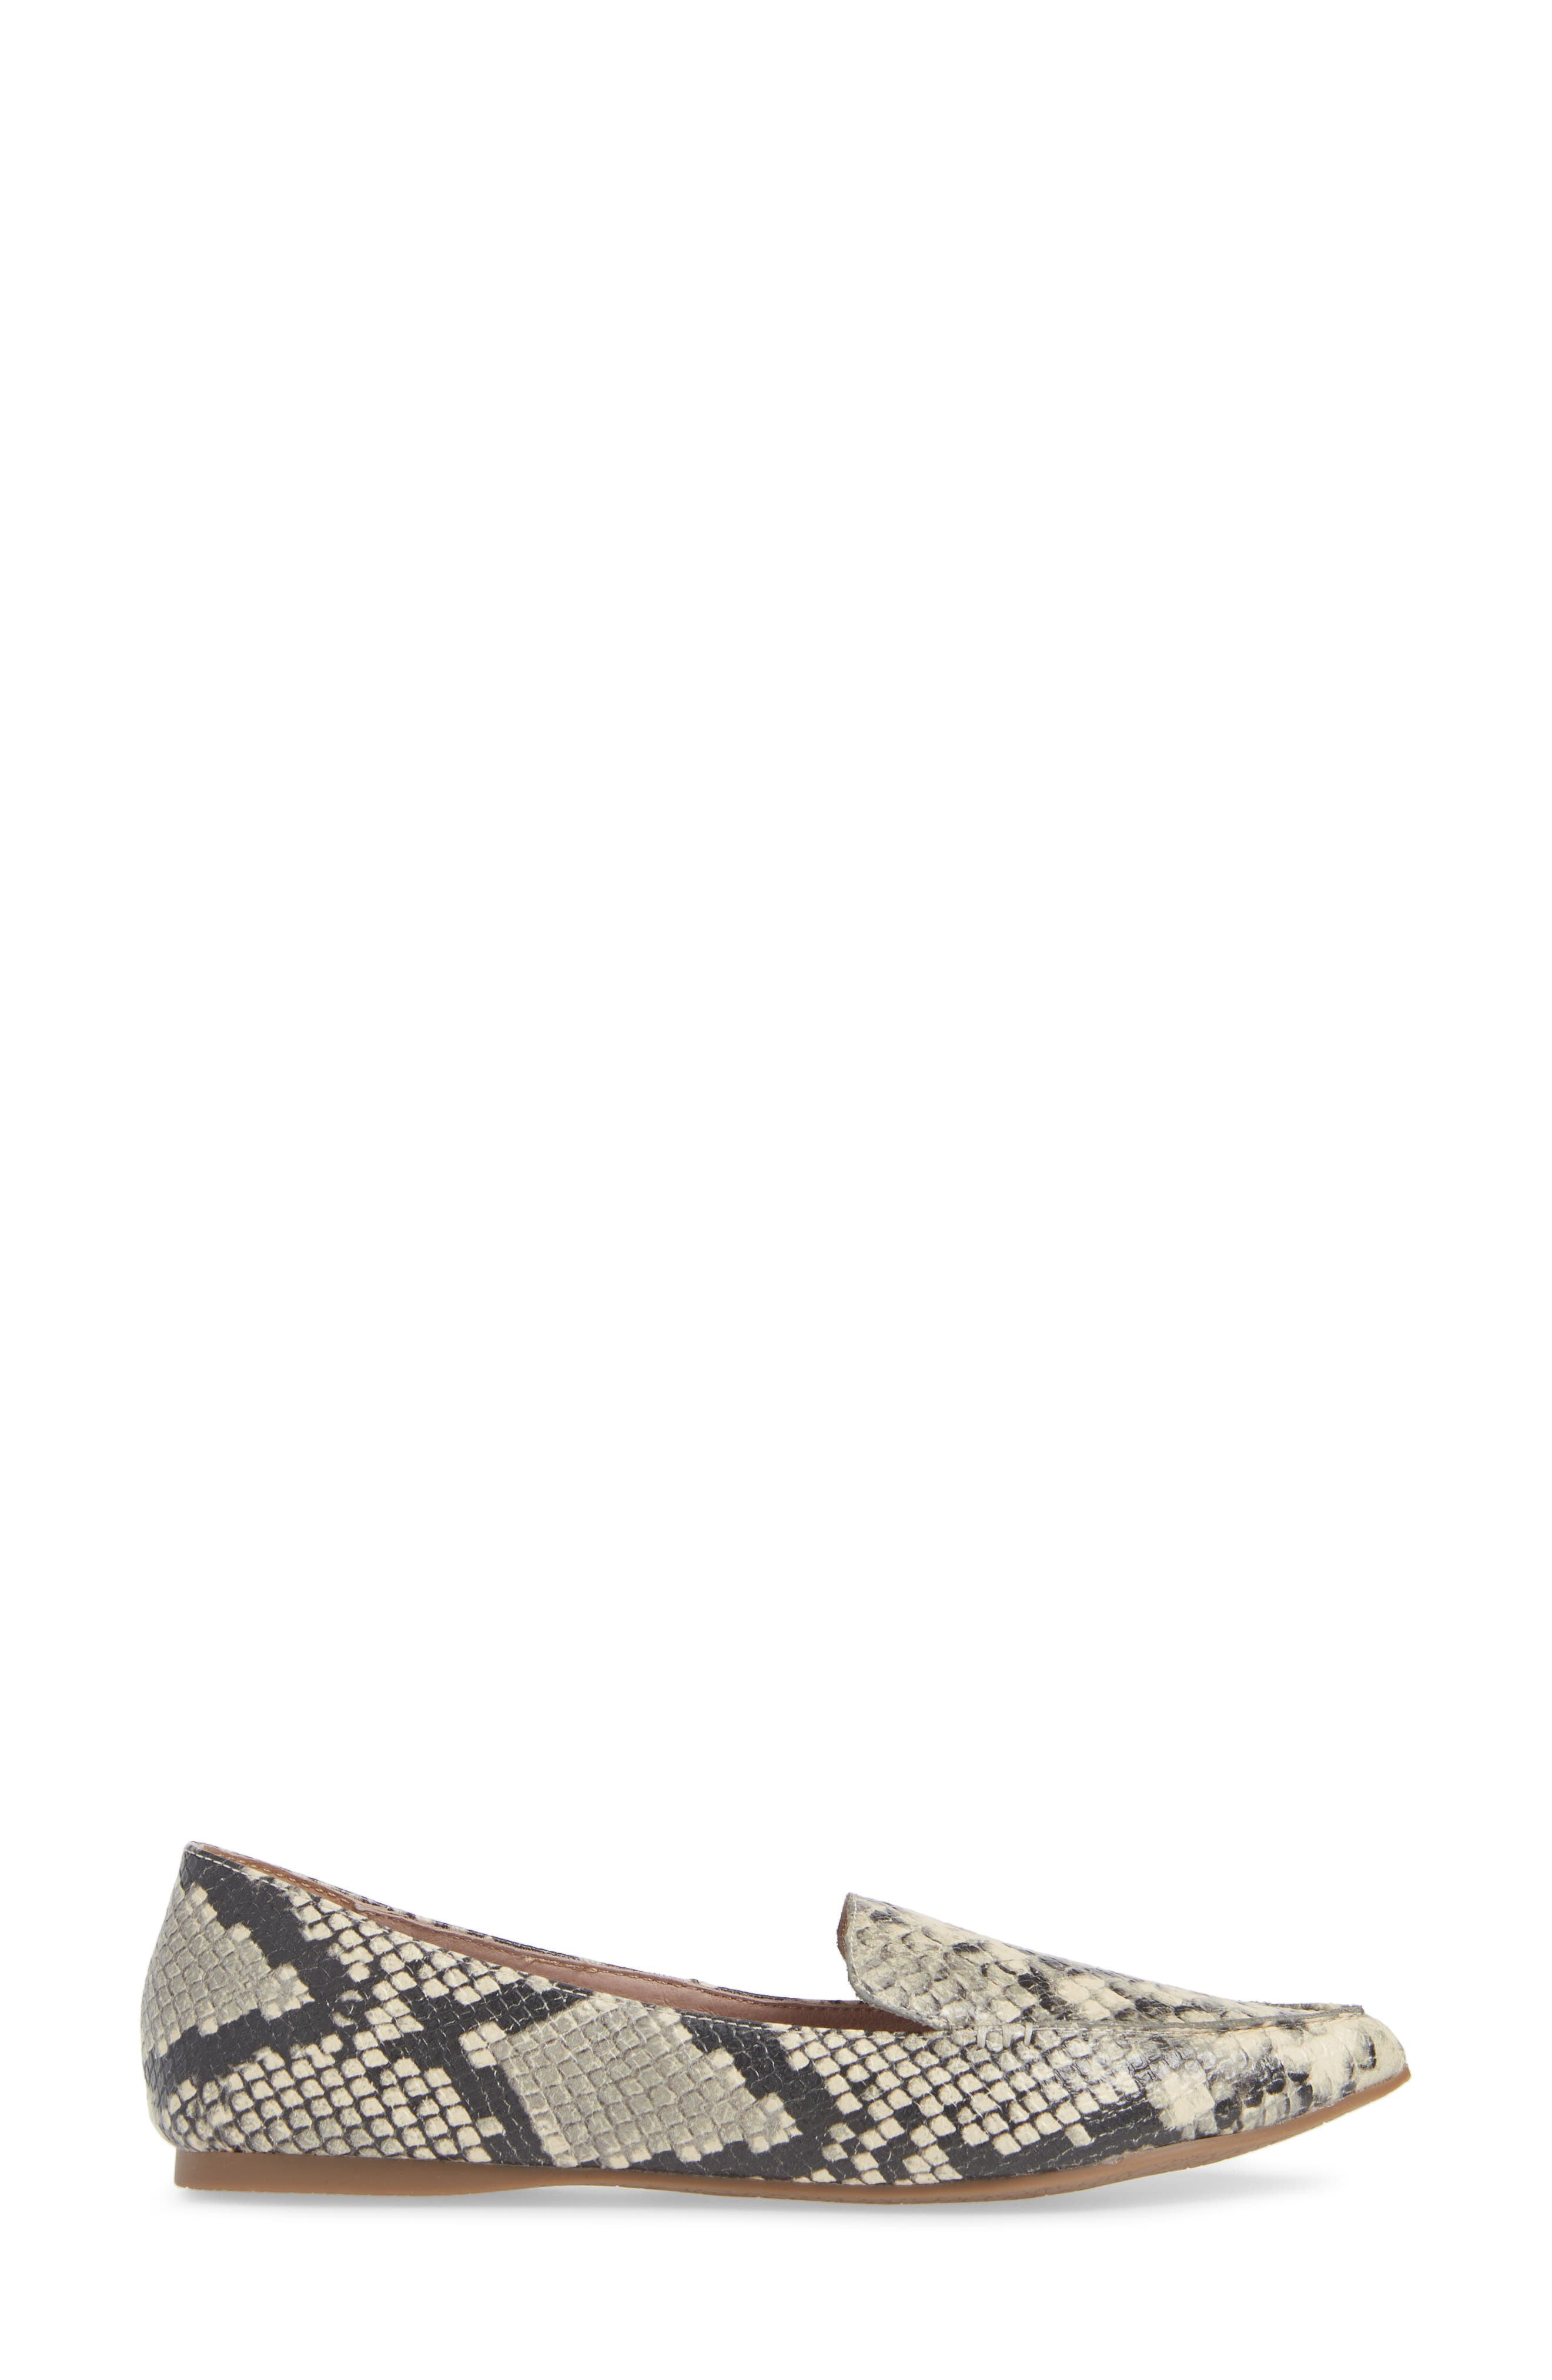 Feather Loafer Flat,                             Alternate thumbnail 3, color,                             SNAKE PRINT LEATHER